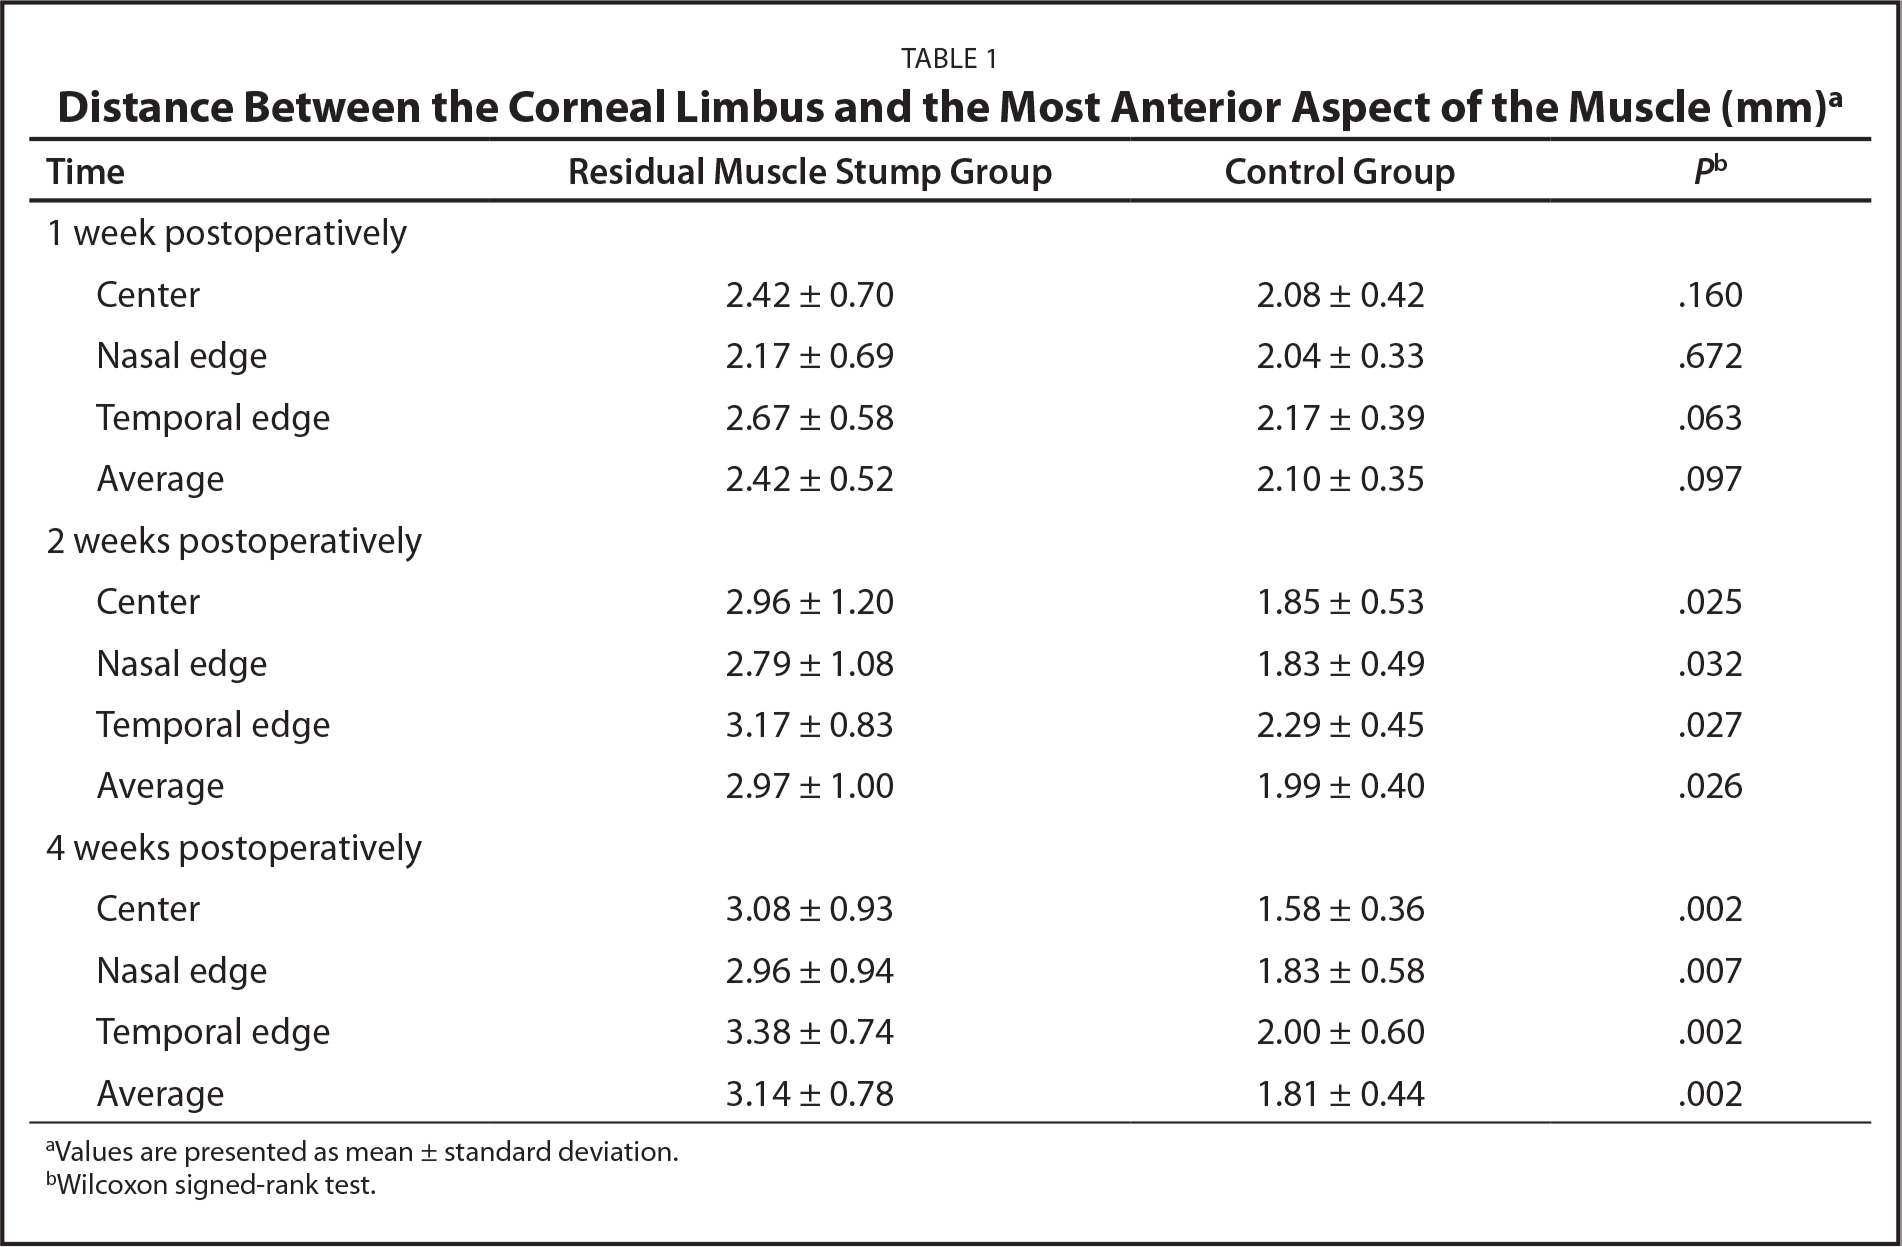 Distance Between the Corneal Limbus and the Most Anterior Aspect of the Muscle (mm)a